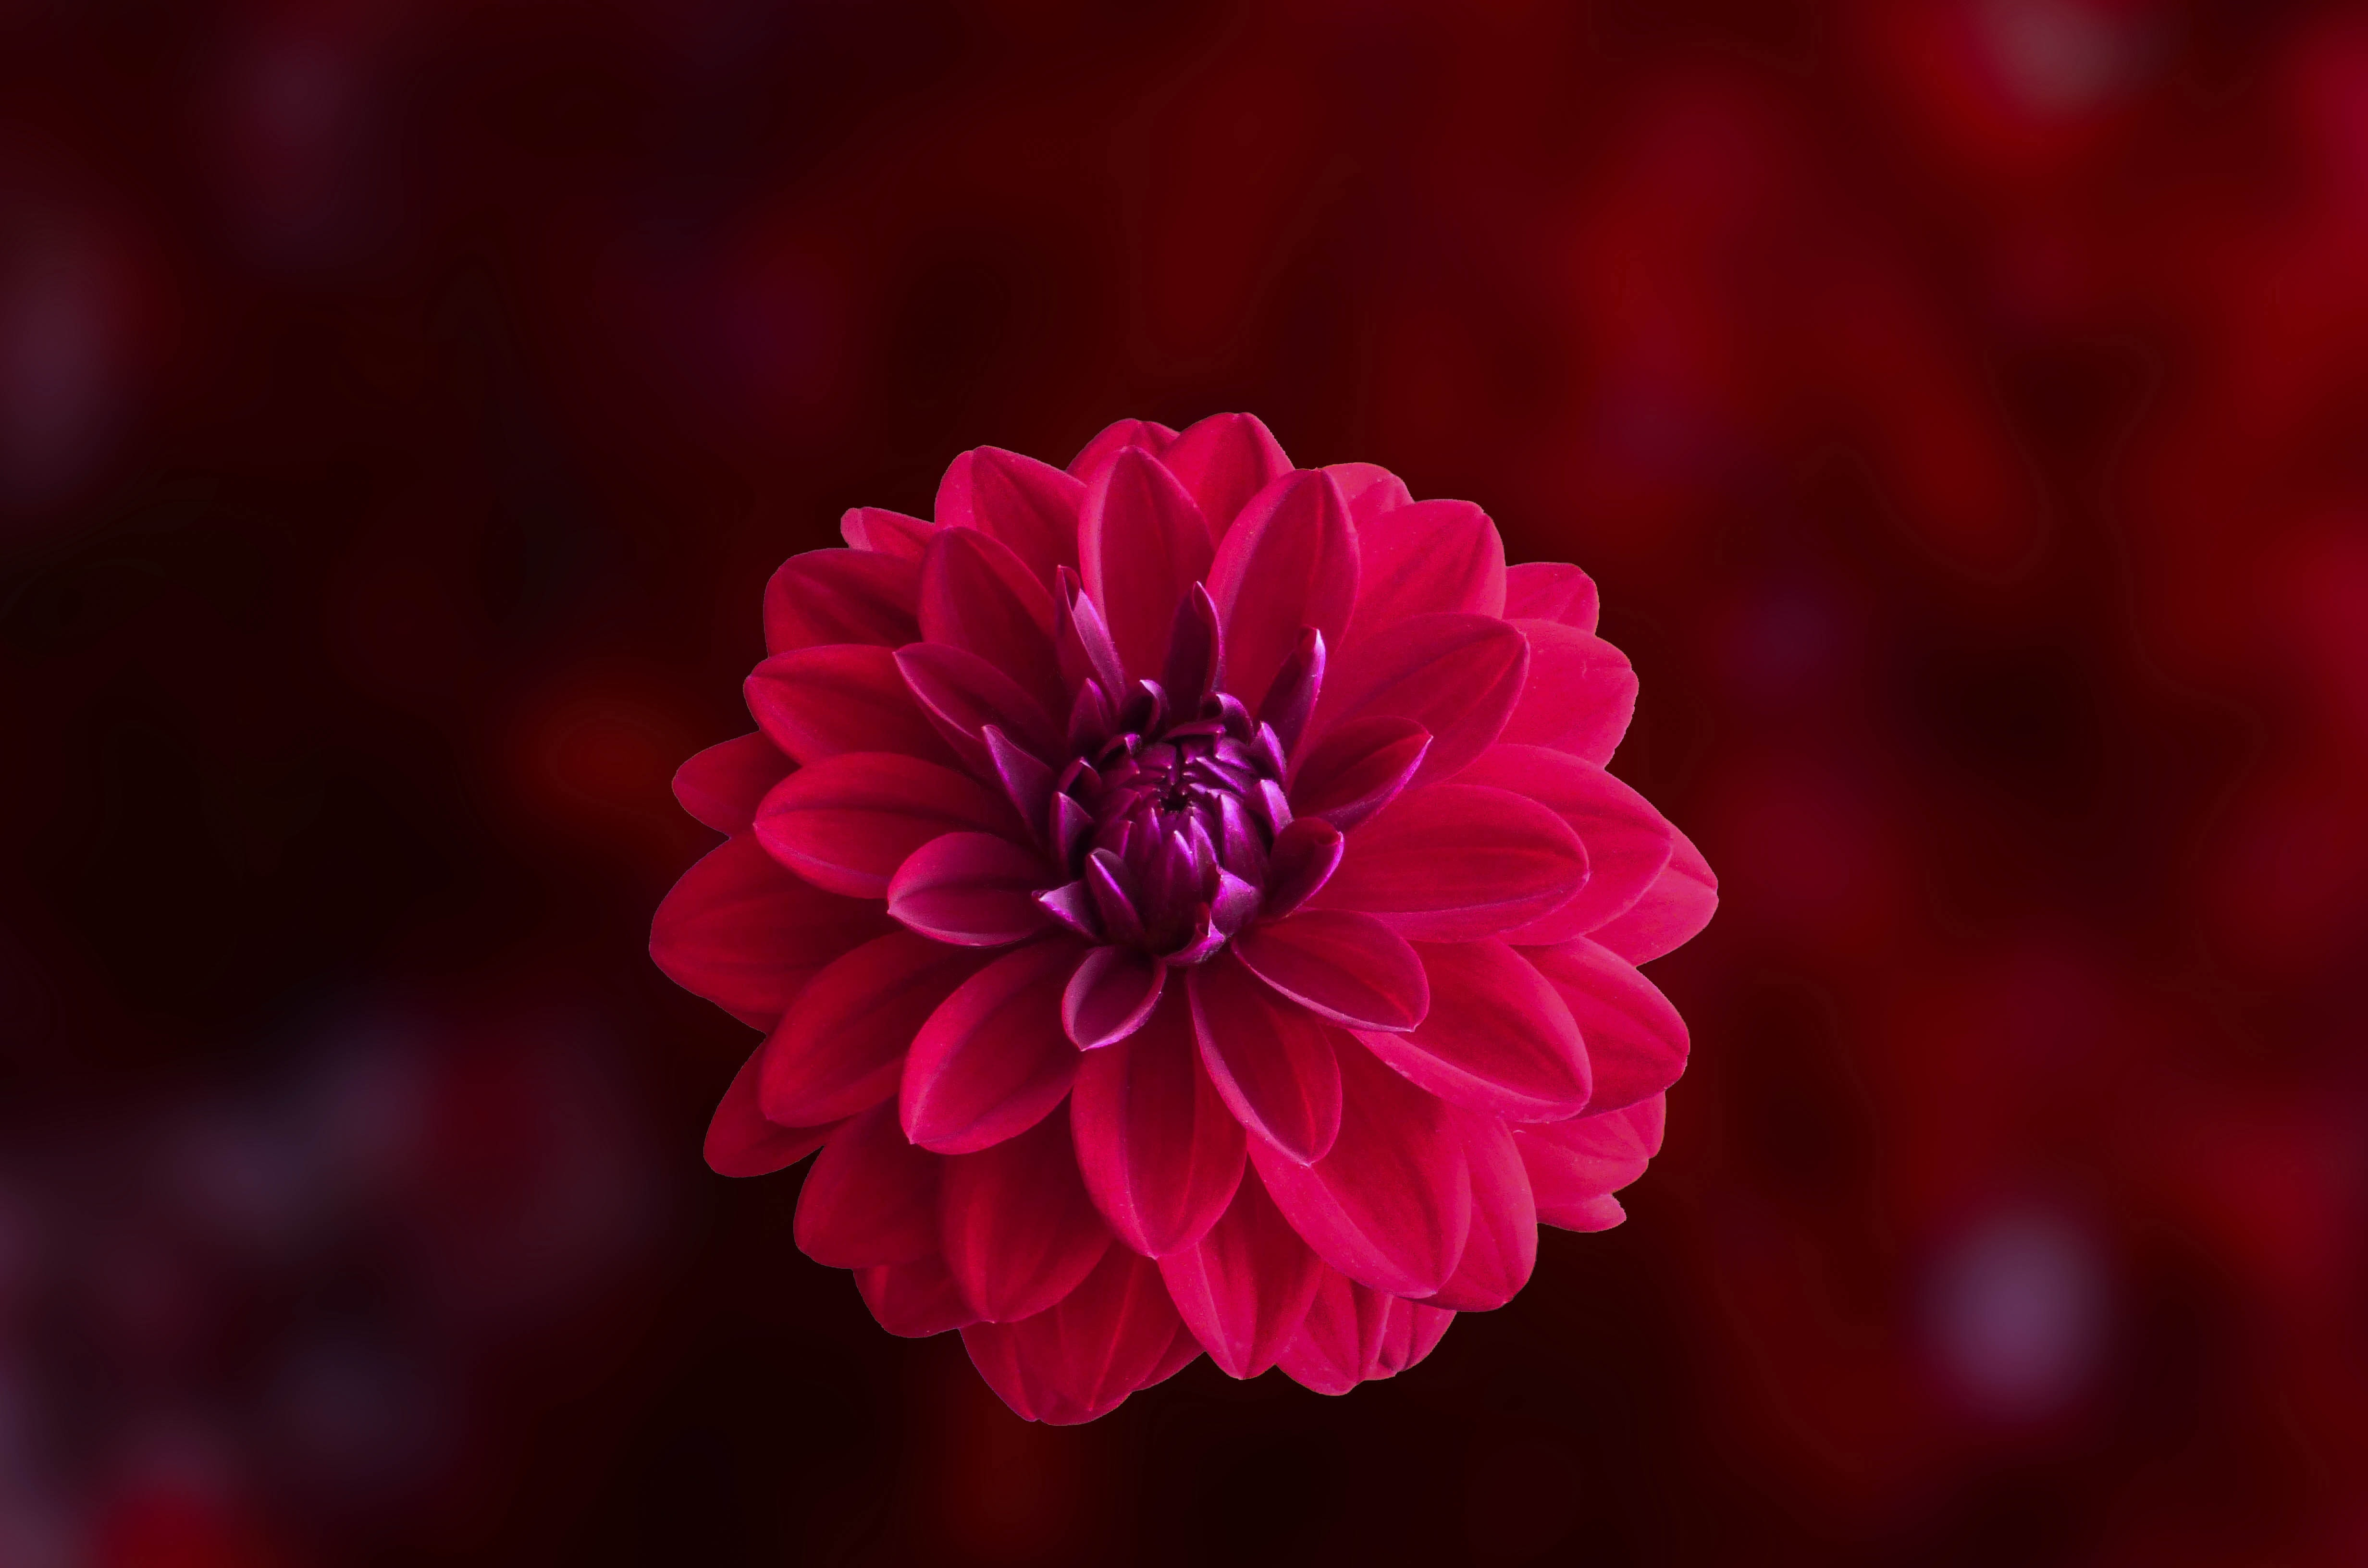 Free photo pink dahlia flower in bloom close up photo flower pink dahlia flower in bloom close up photo izmirmasajfo